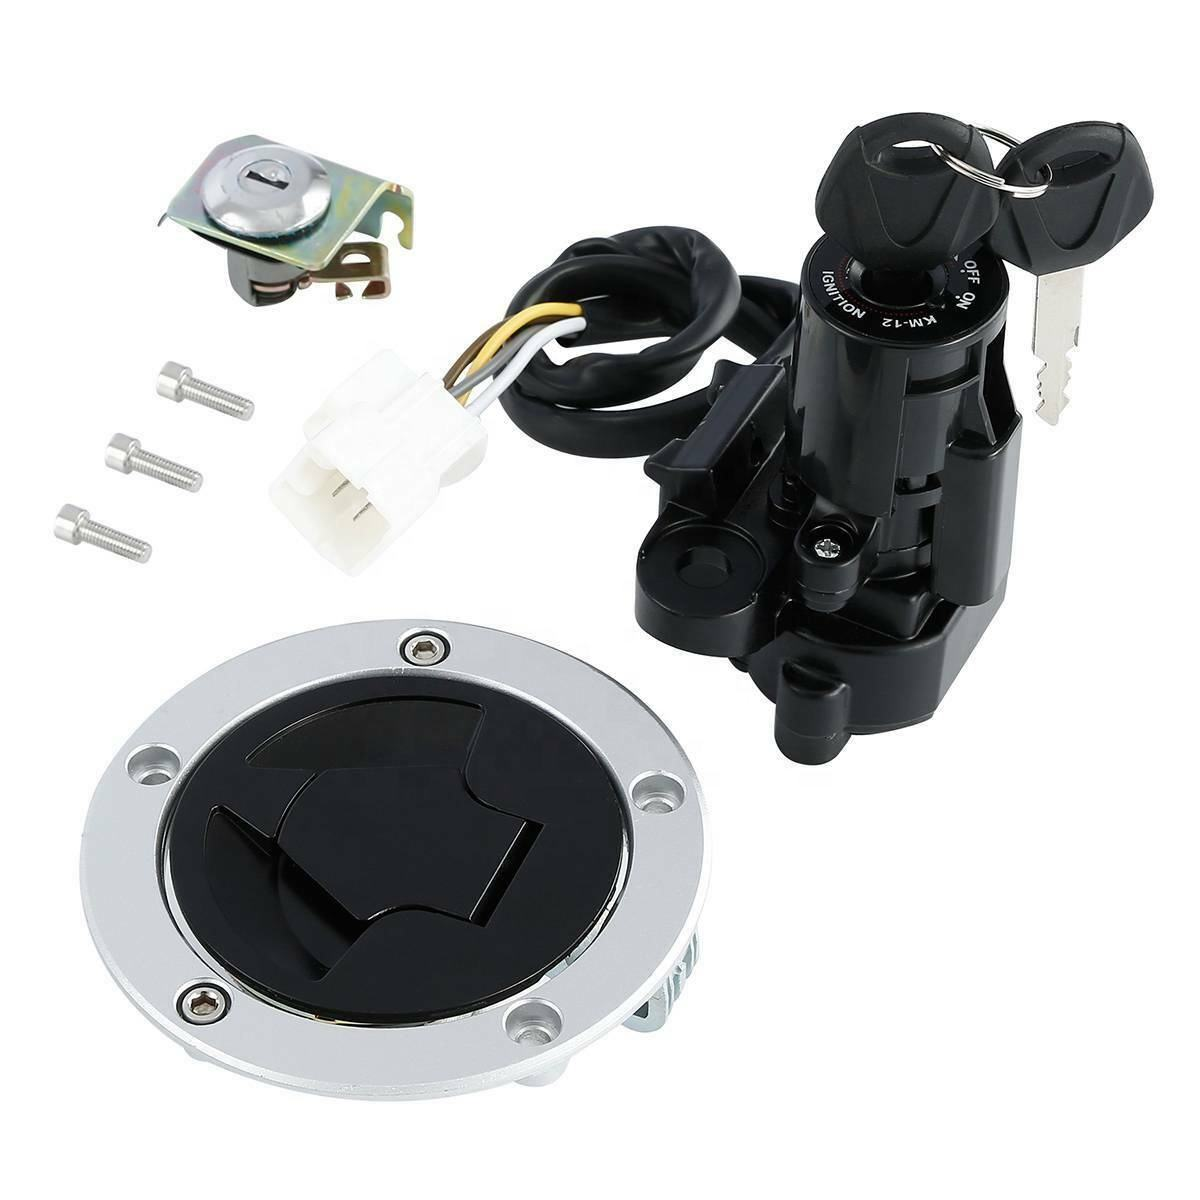 TCMT XF-2873 Fuel Gas Cap Ignition Switch Seat & Lock Keys Fit For Kawasaki Z1000 10-16